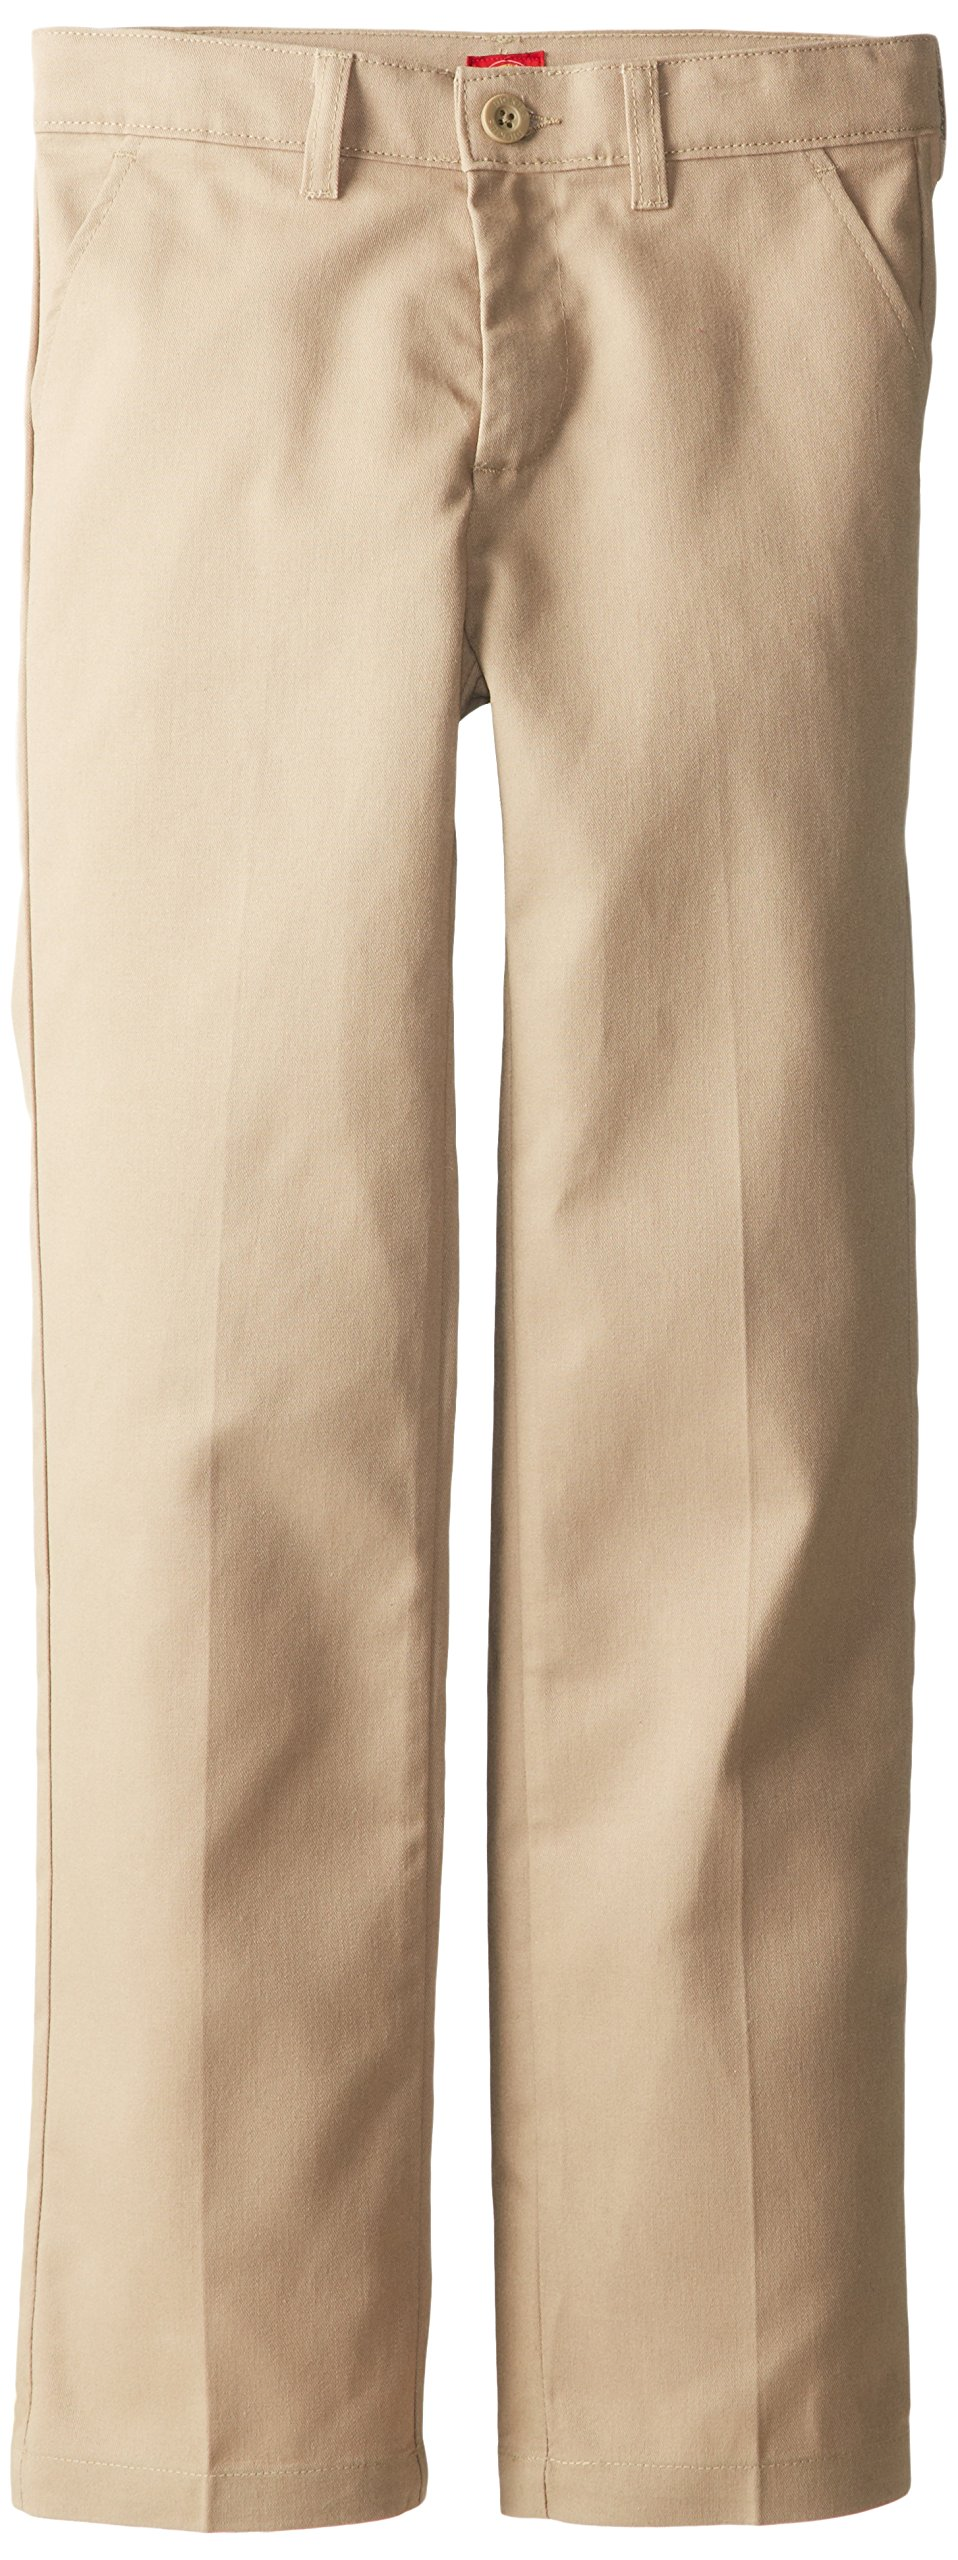 Dickies Big Girls' Slim Stretch Flat Front Pant, Desert Sand, 16 Regular